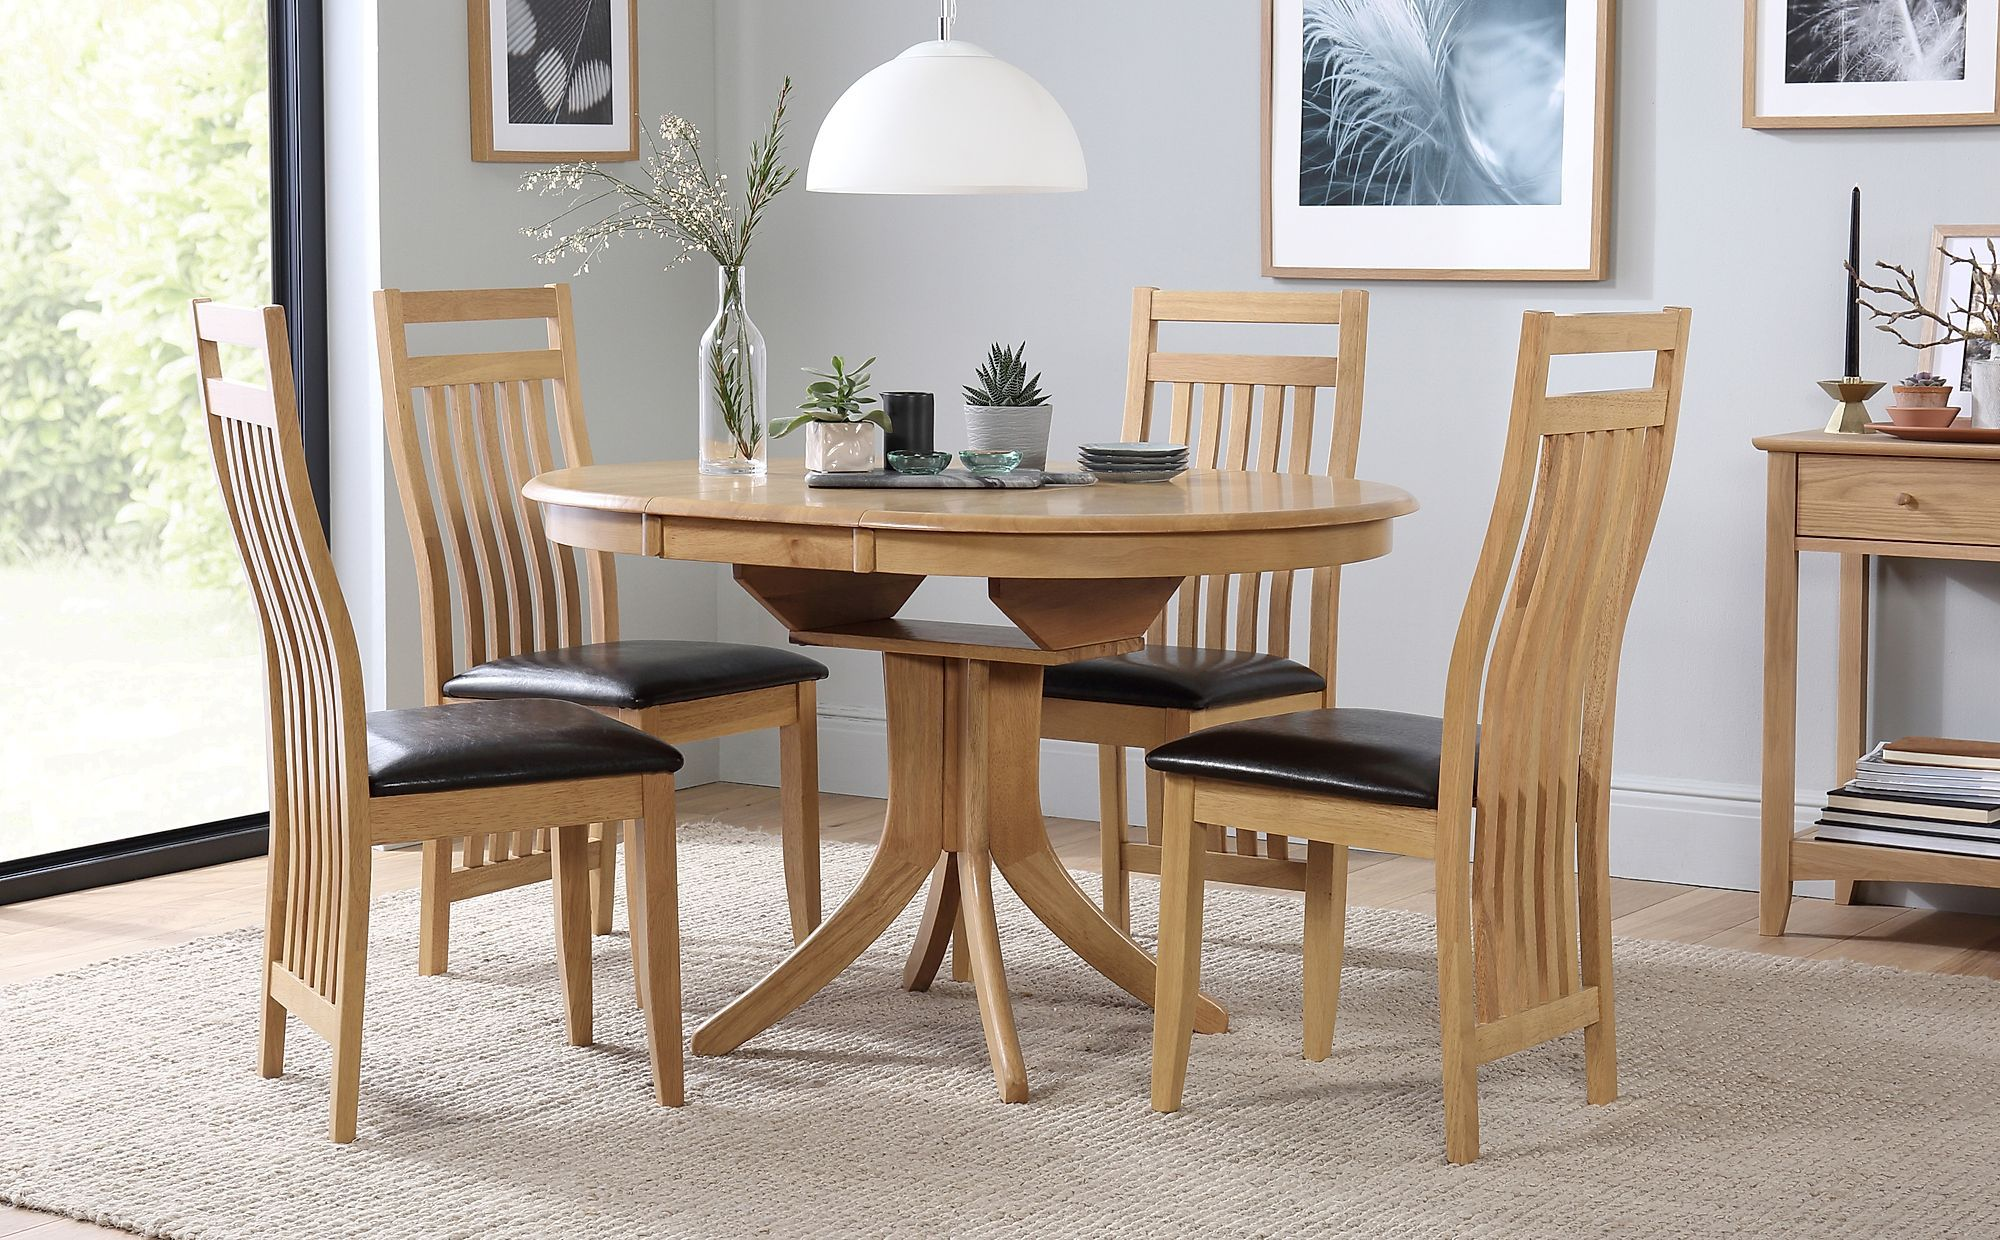 20+ Wooden extendable dining table set Best